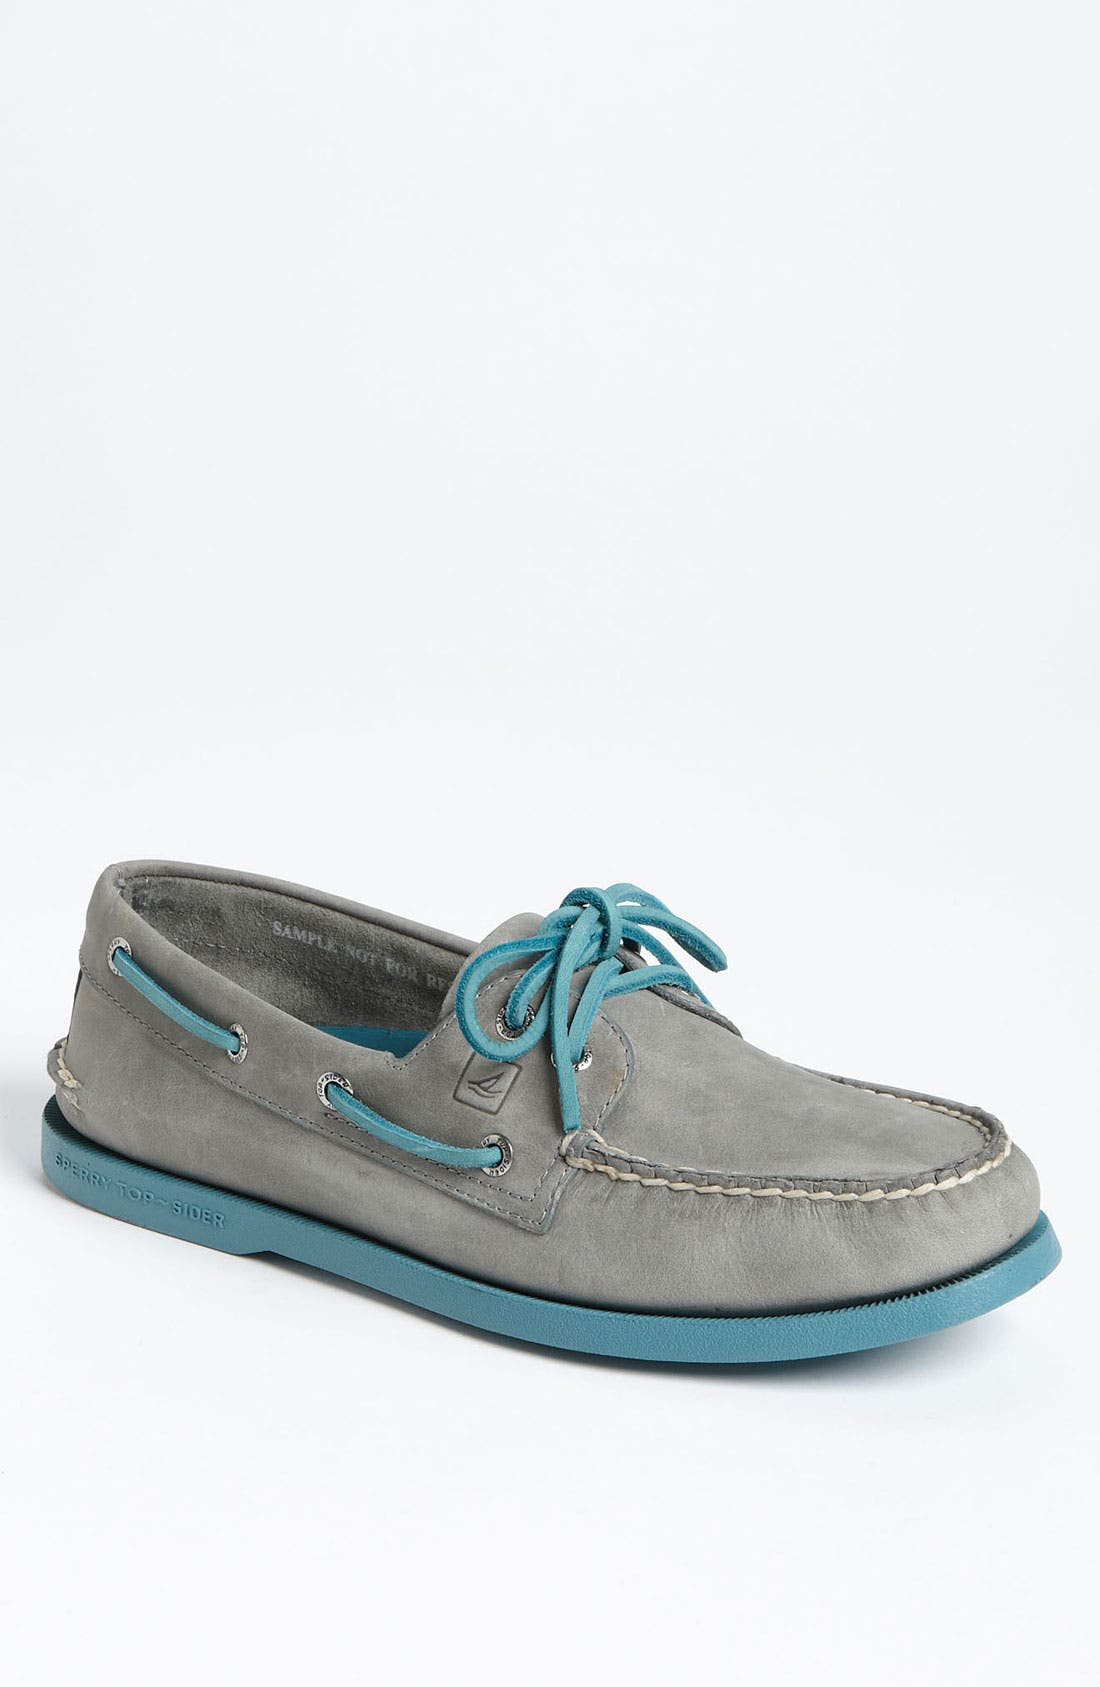 Alternate Image 1 Selected - Sperry Top-Sider® 'Authentic Original 2-Eye' Boat Shoe (Men)